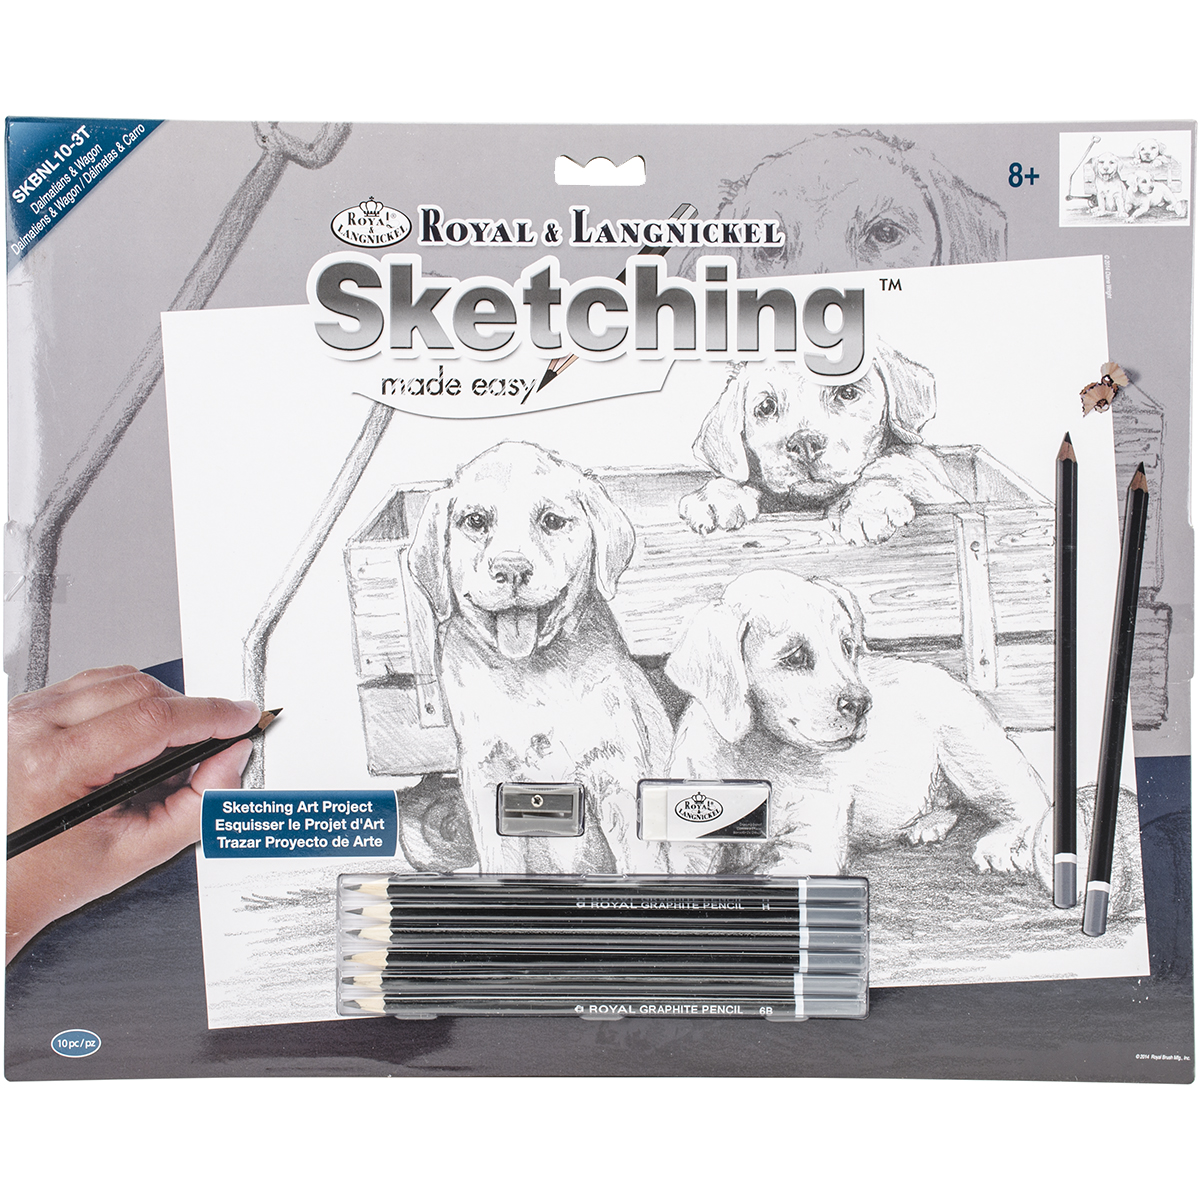 Royal Brush 16-Inch by 12.75-Inch Sketching Made Easy, Large, Puppies and Wagon Multi-Colored